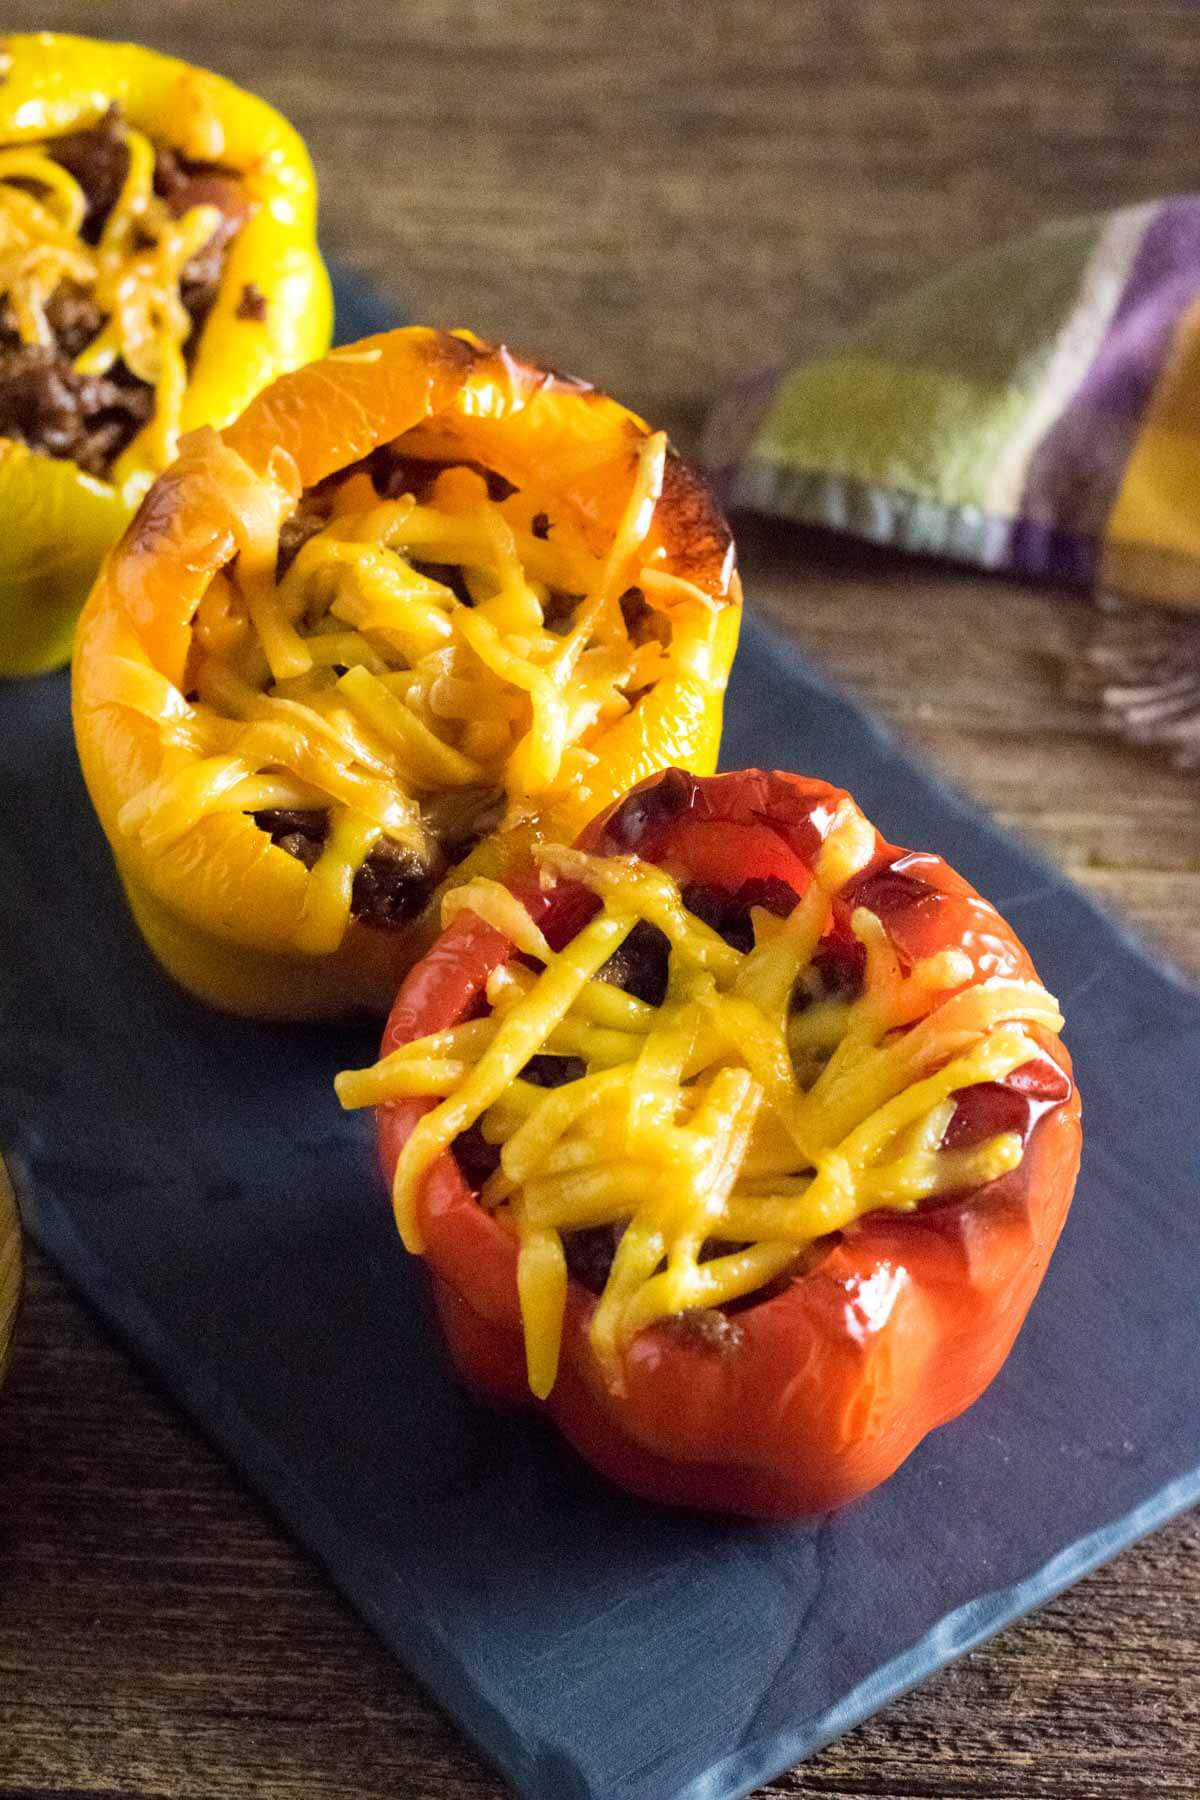 BBQ stuffed peppers on tray.